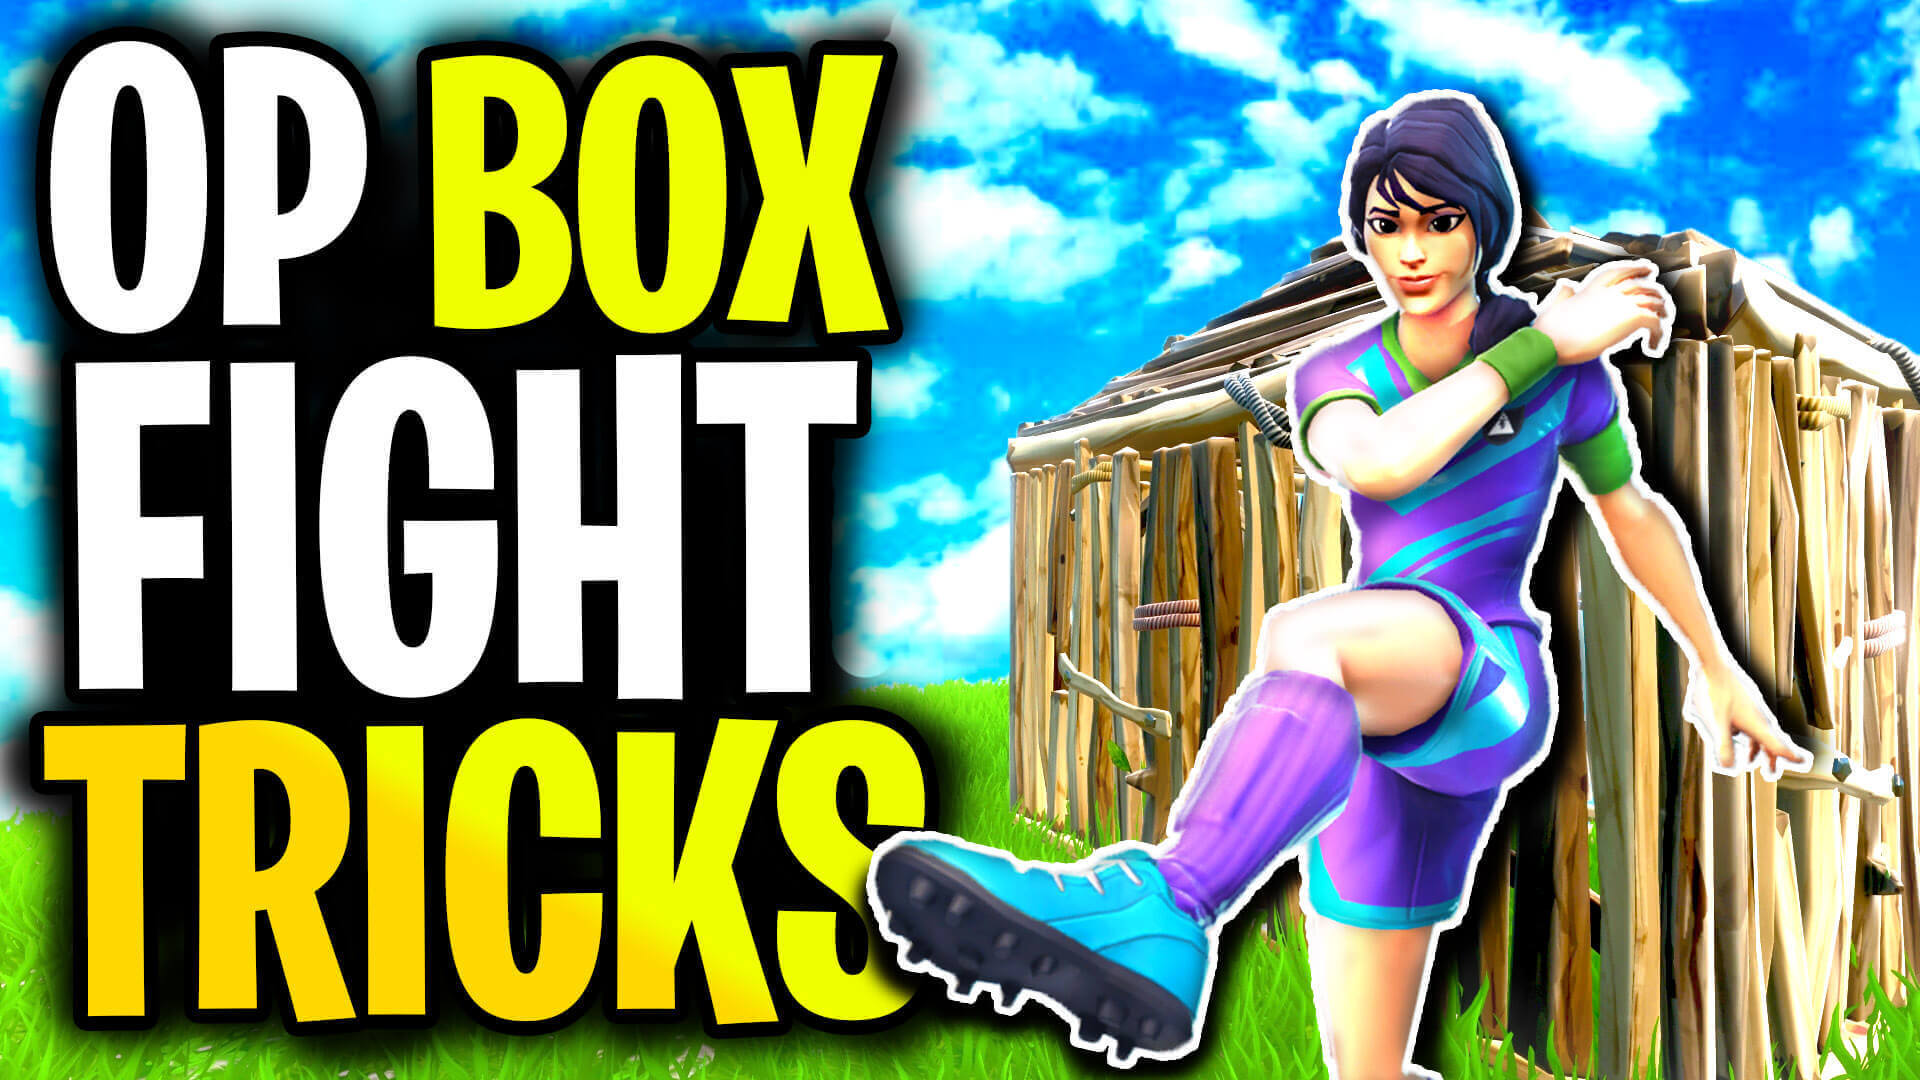 5 BOX FIGHTING Tips For INSTANT Improvement!